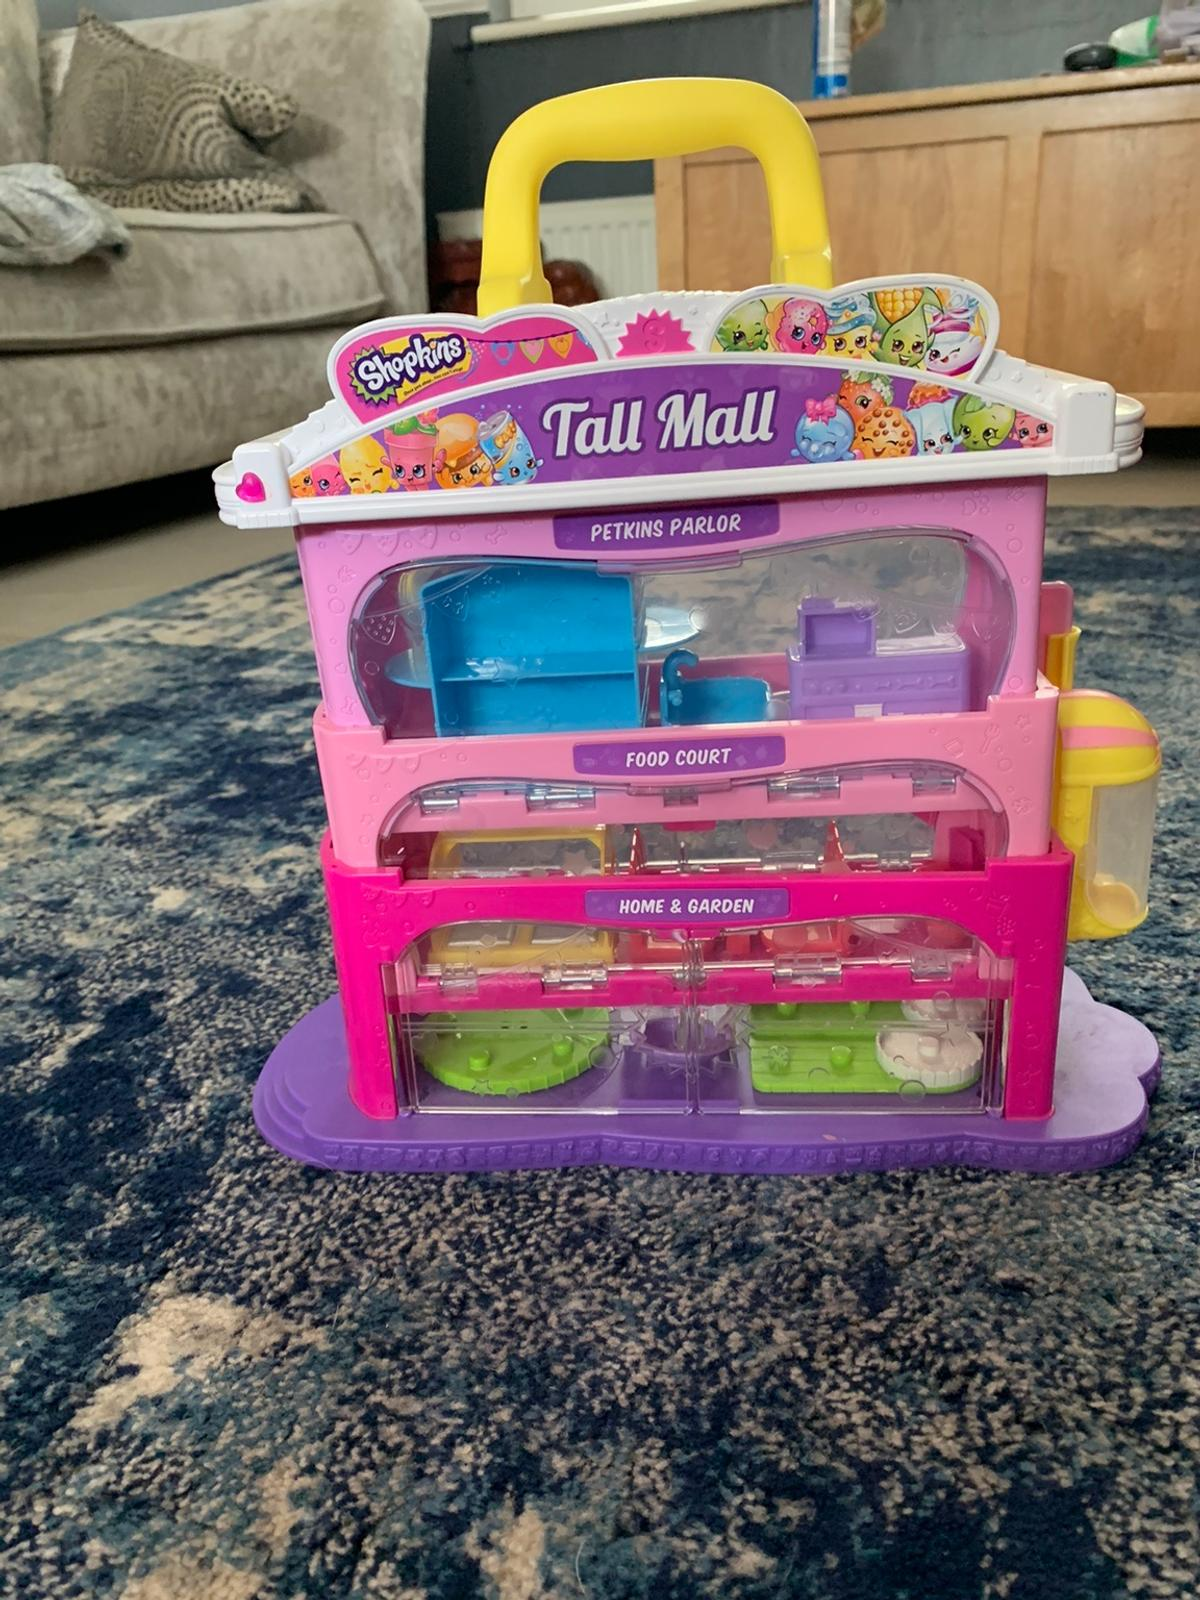 Shopkins shopping mall, opens up and closes/locks.